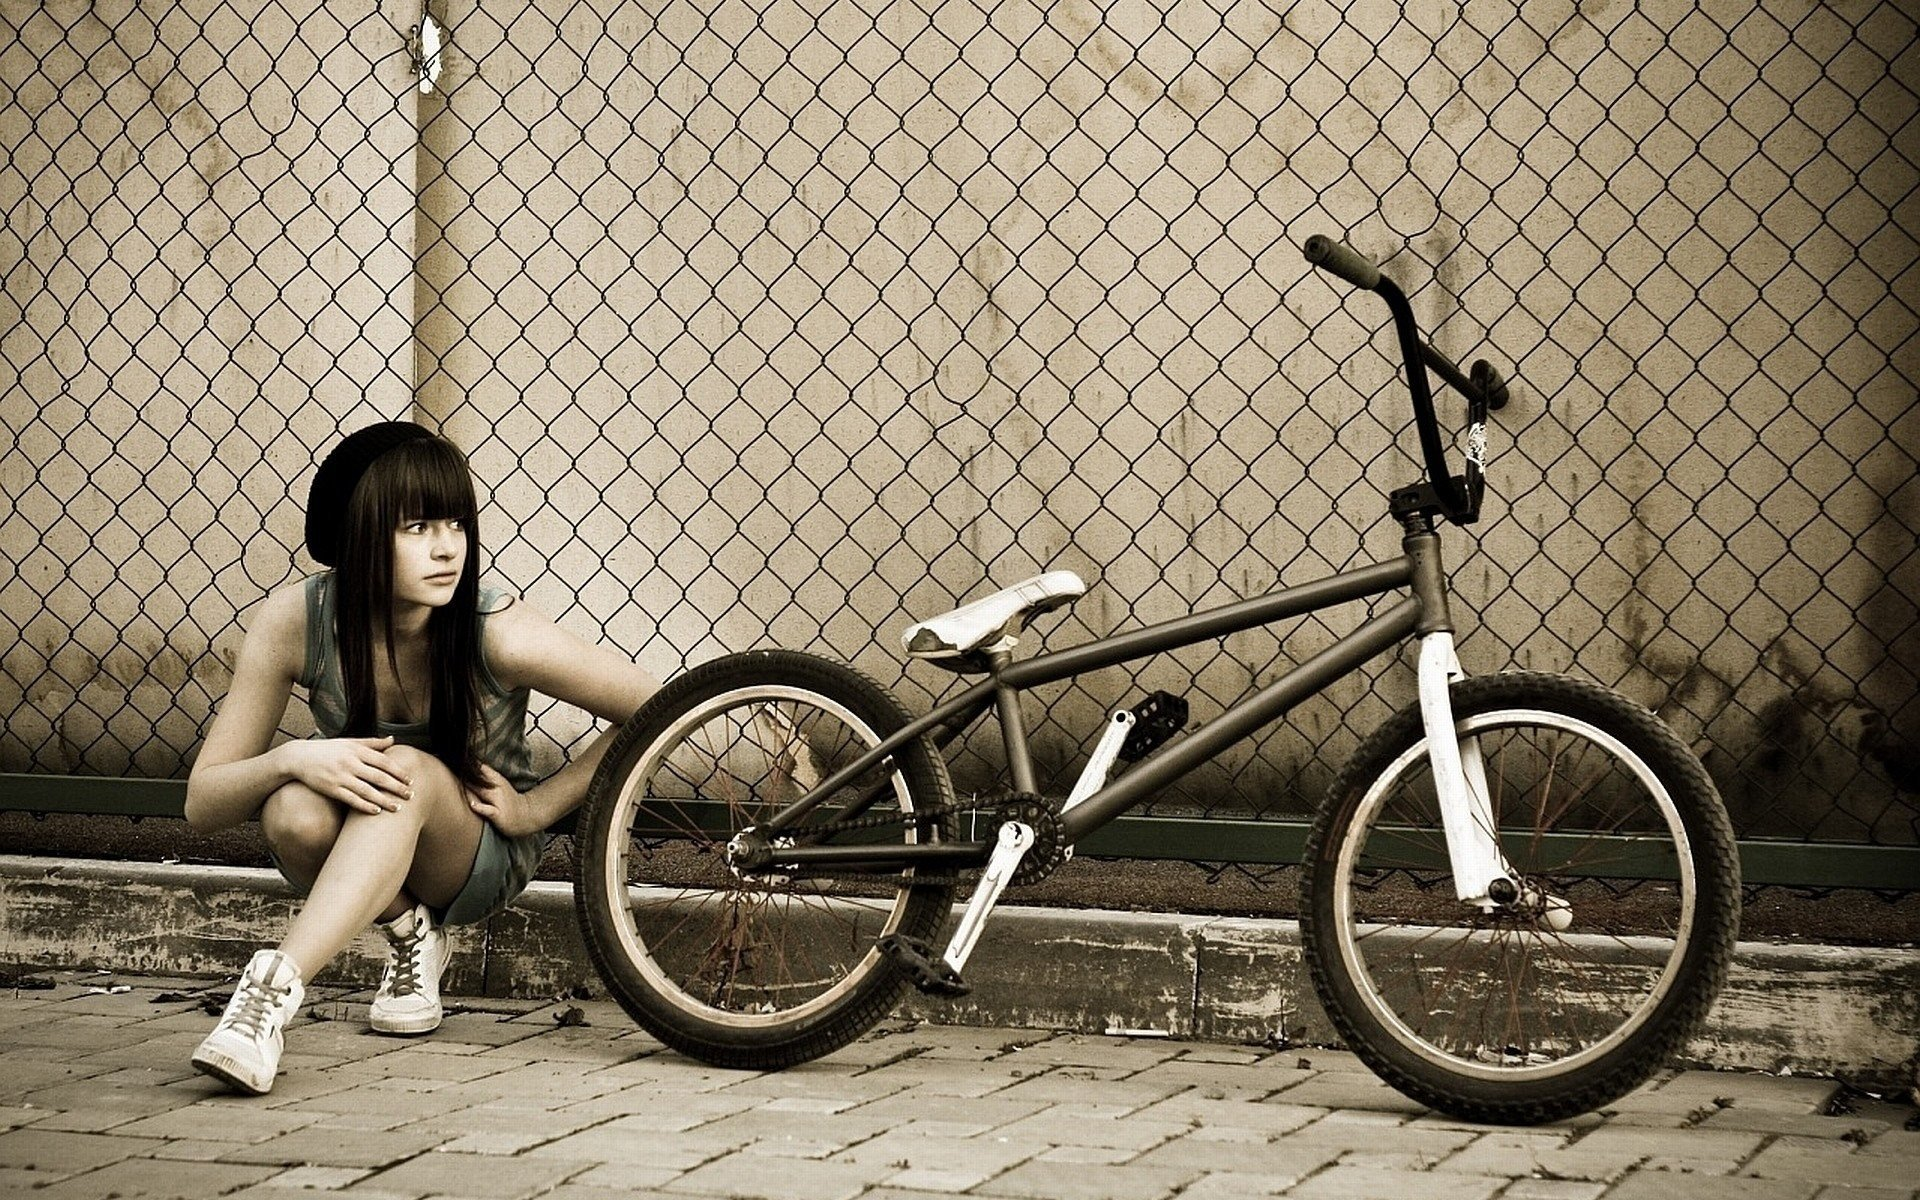 164 bicycle hd wallpapers